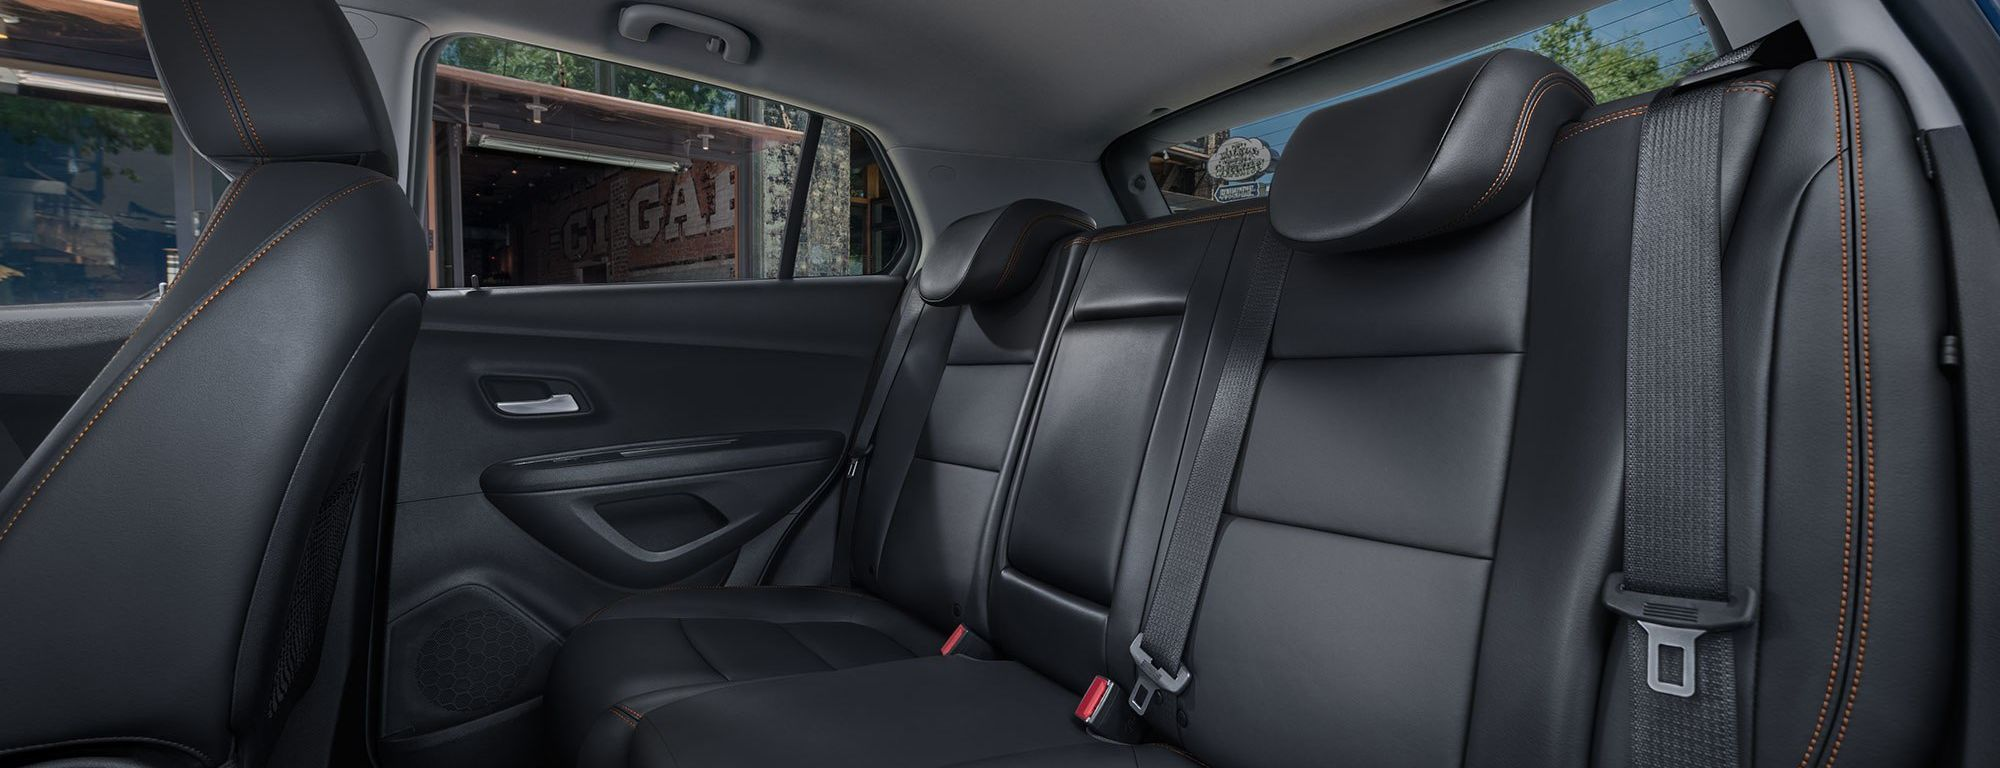 2019 Trax Rear Seating